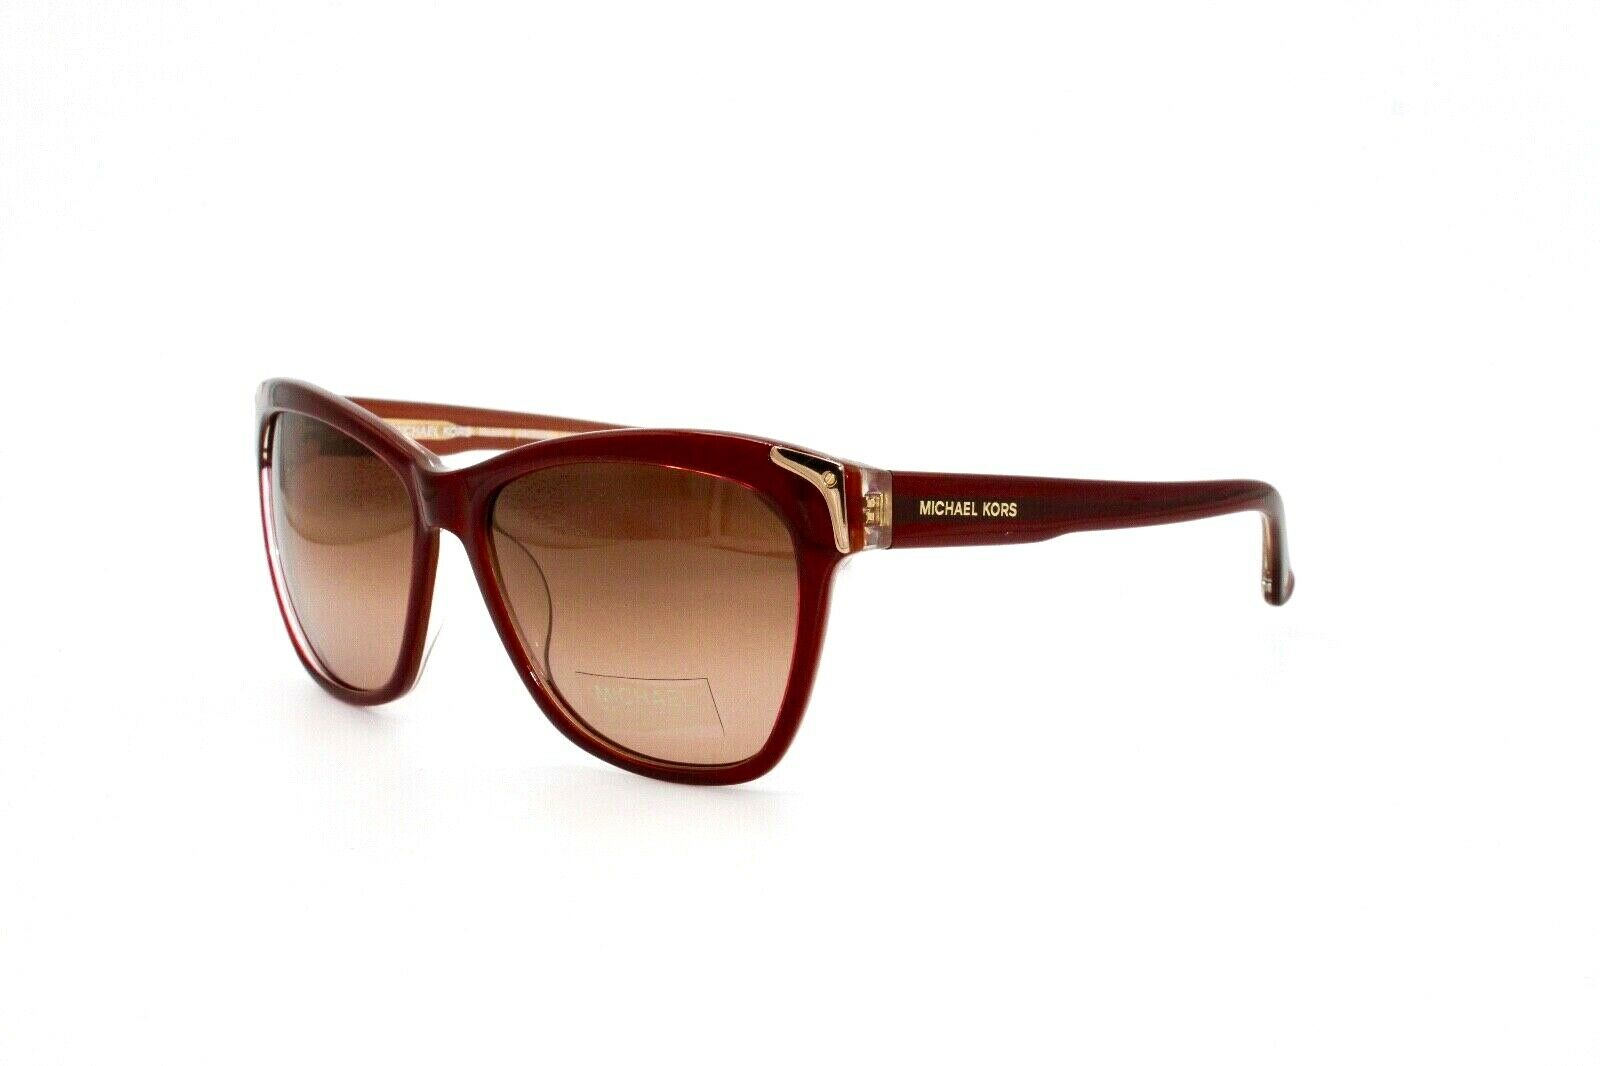 Michael Kors Sunglasses Madeline (MKS826) 604 Made in Italy 58 16 130 - Mydesigneroptic